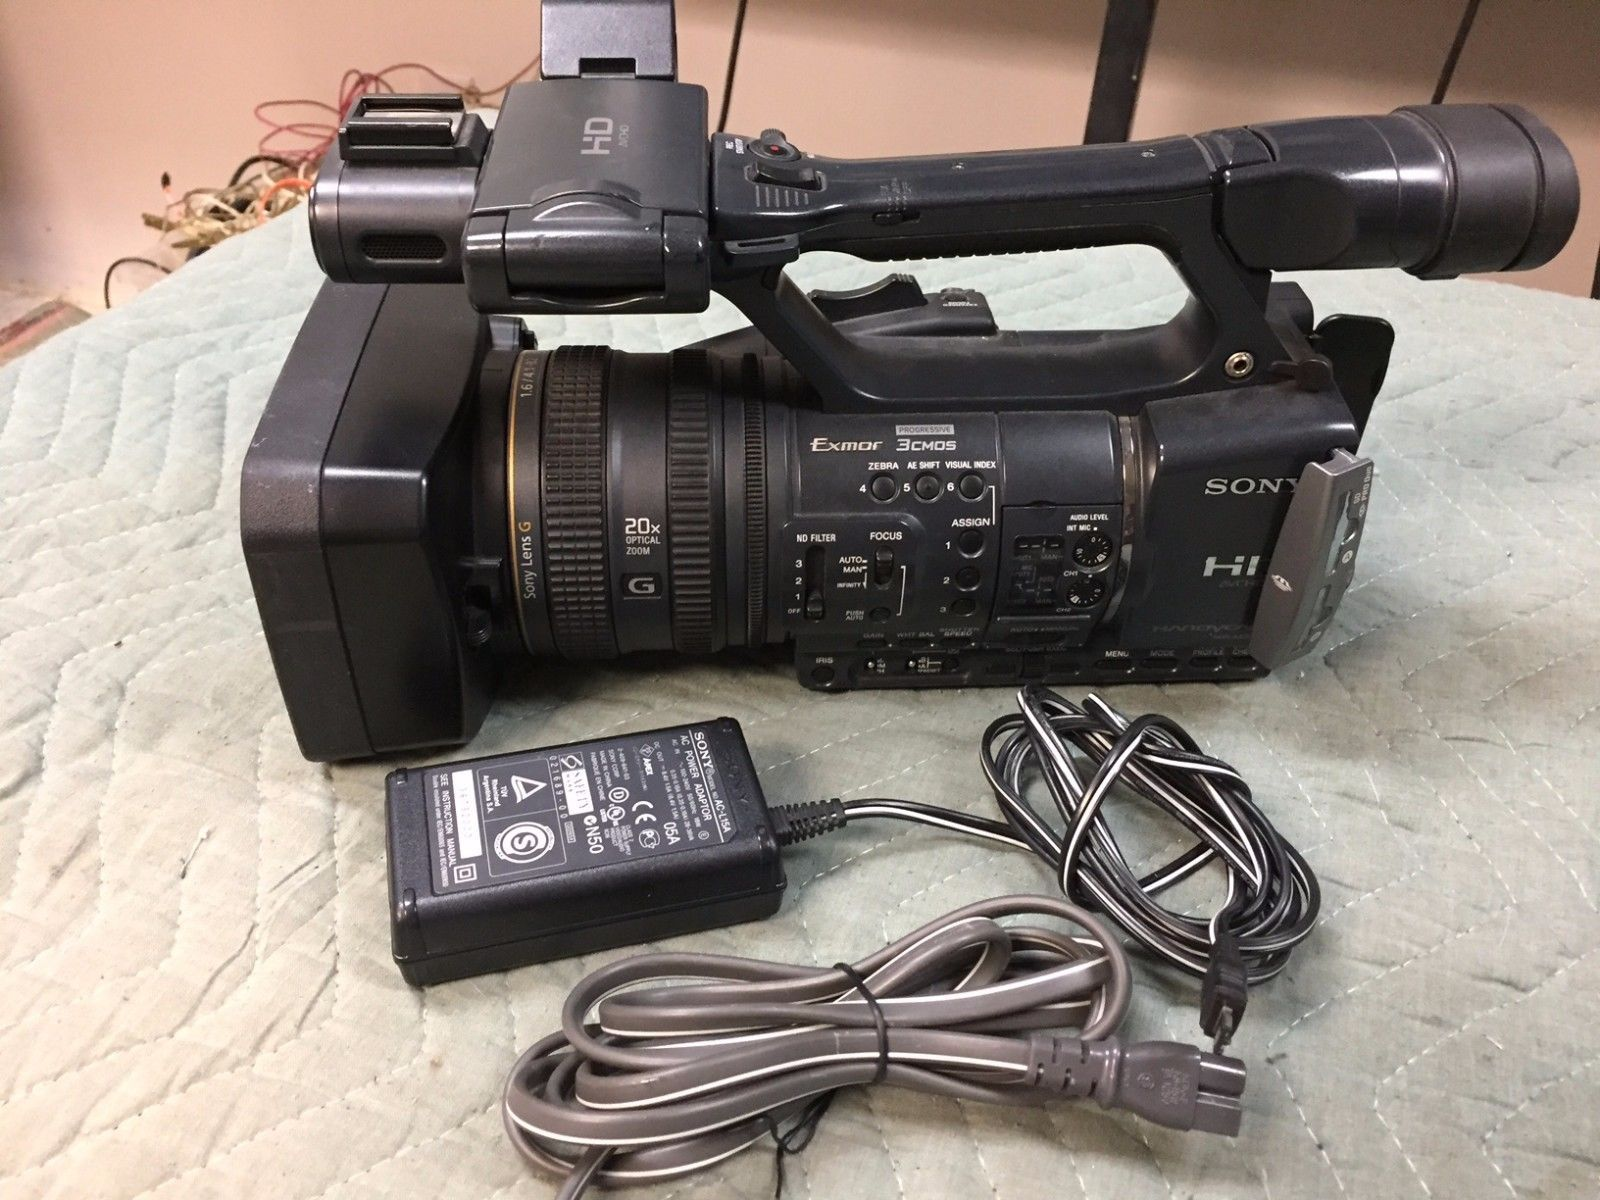 HDR AX2000 Sony Camcorder with power supply Needs Repair